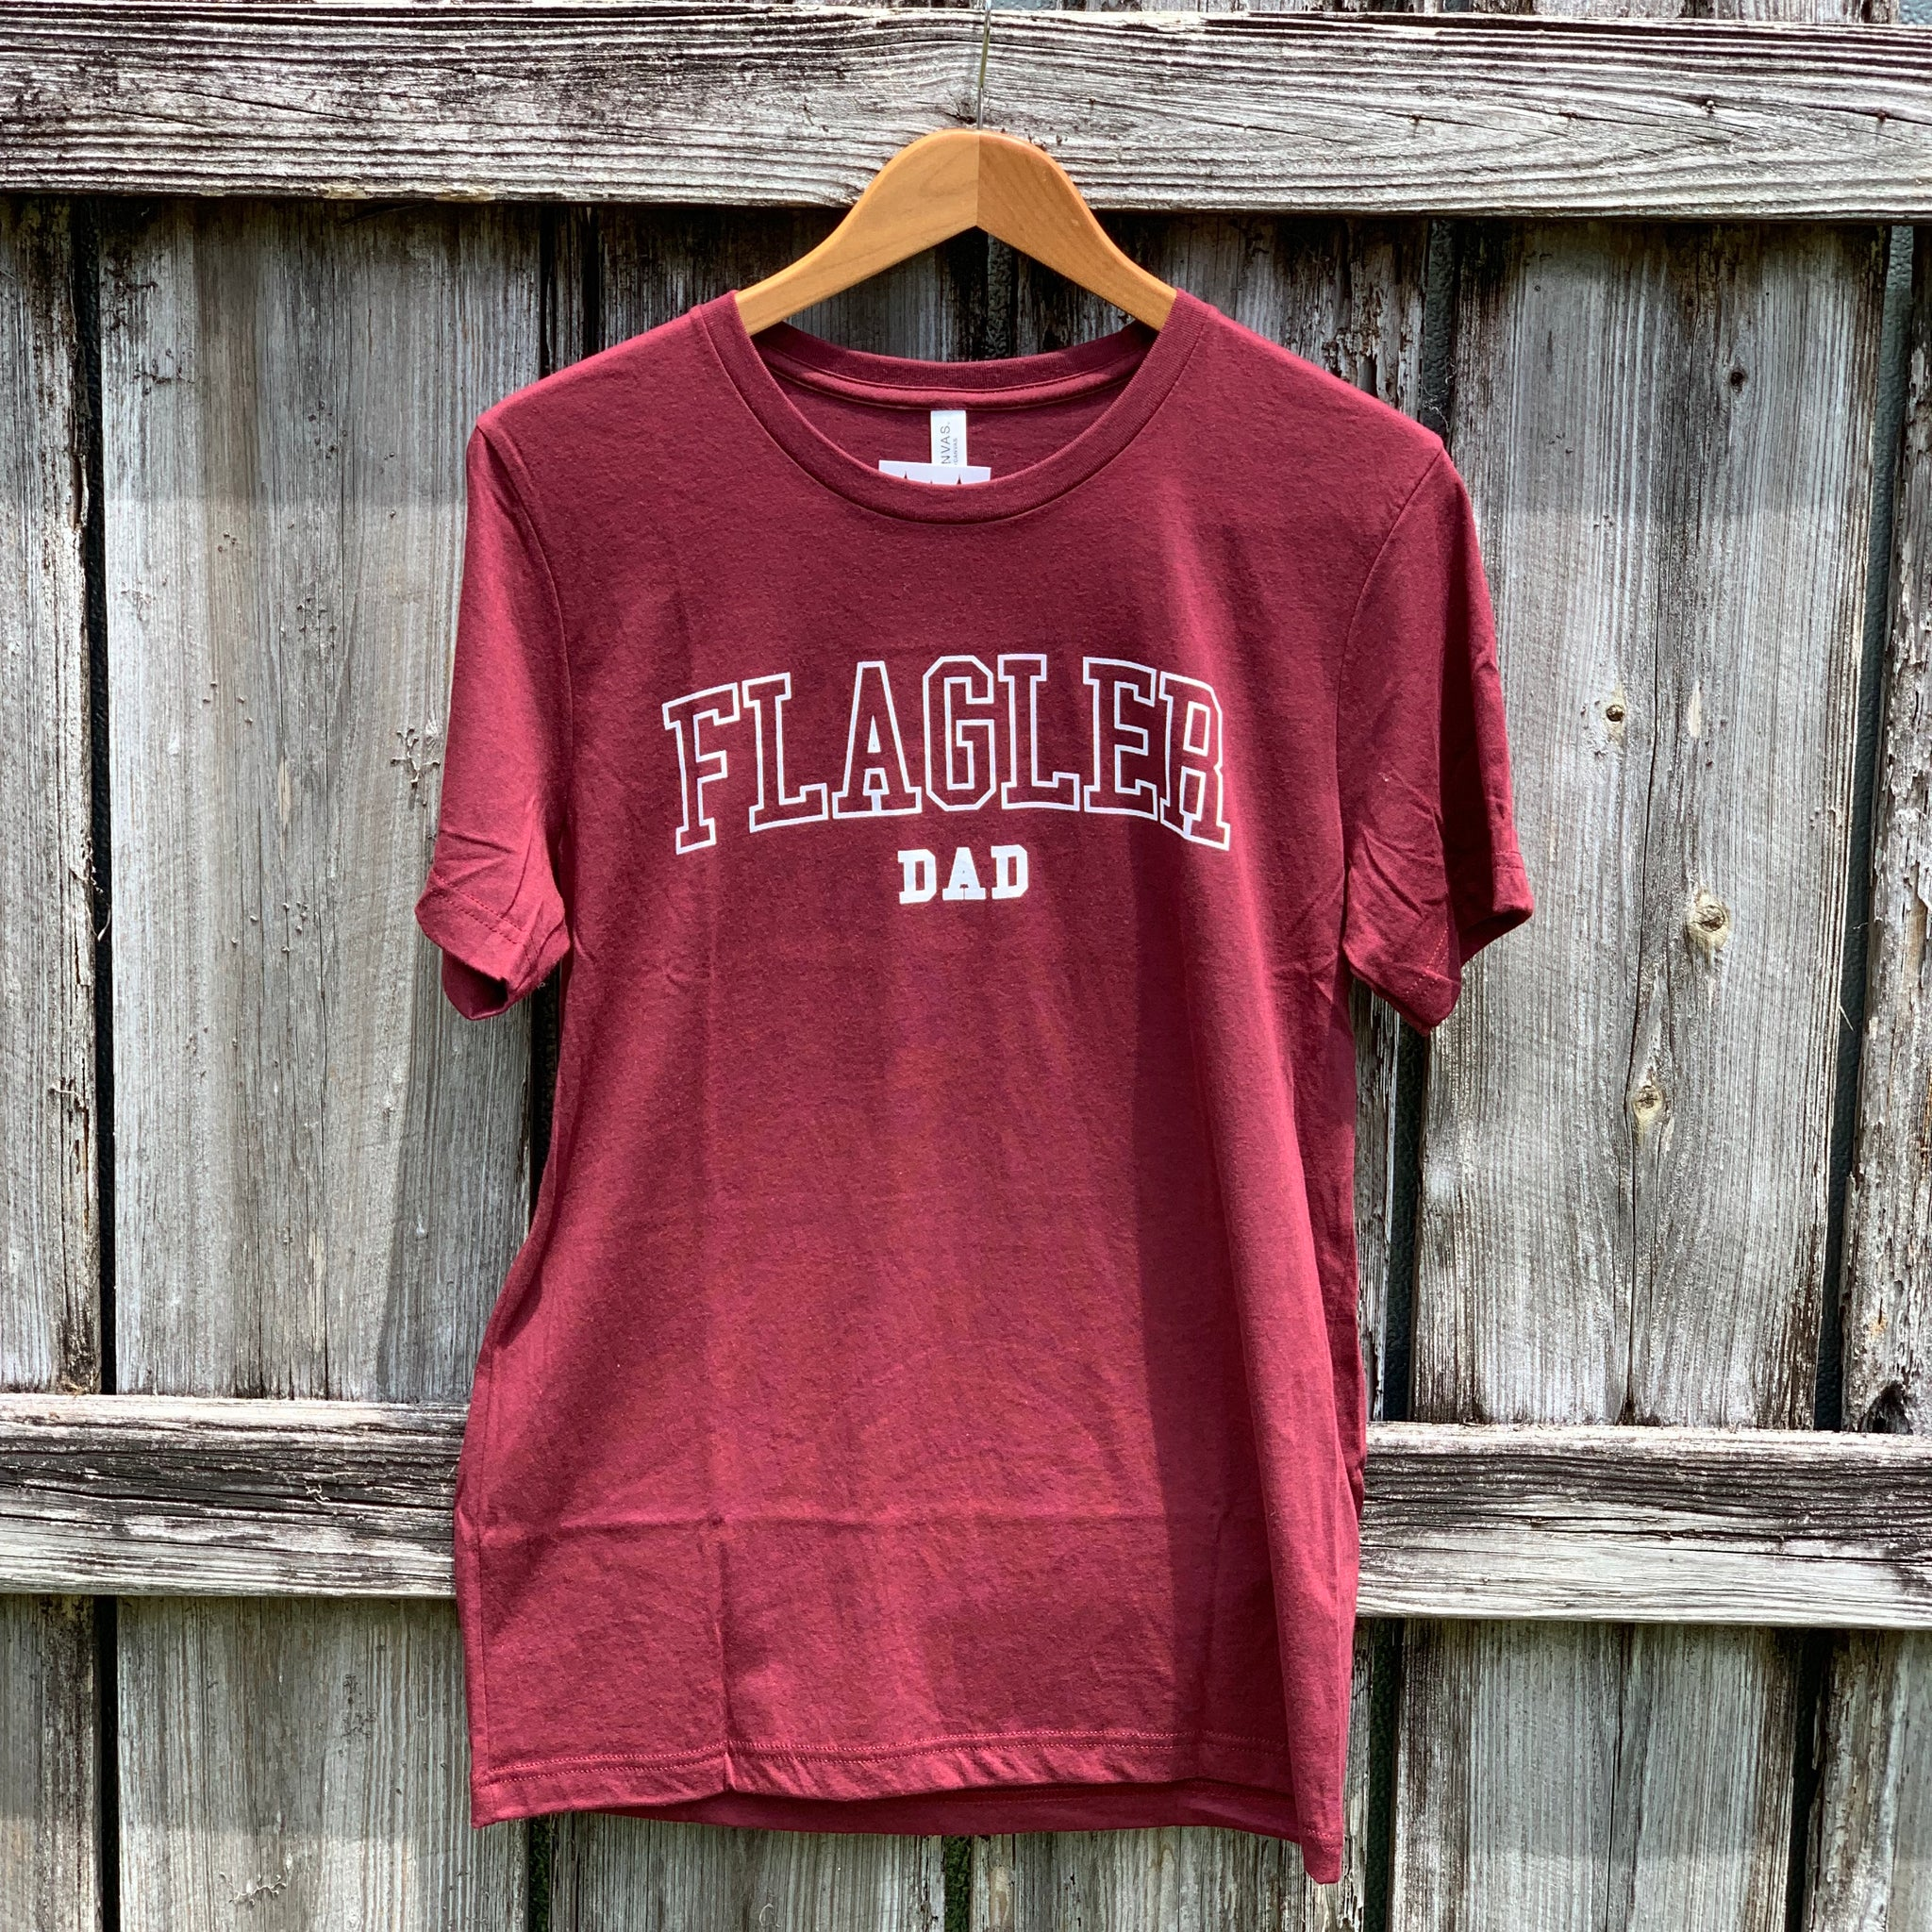 red t-shirt with Flagler dad printed in white